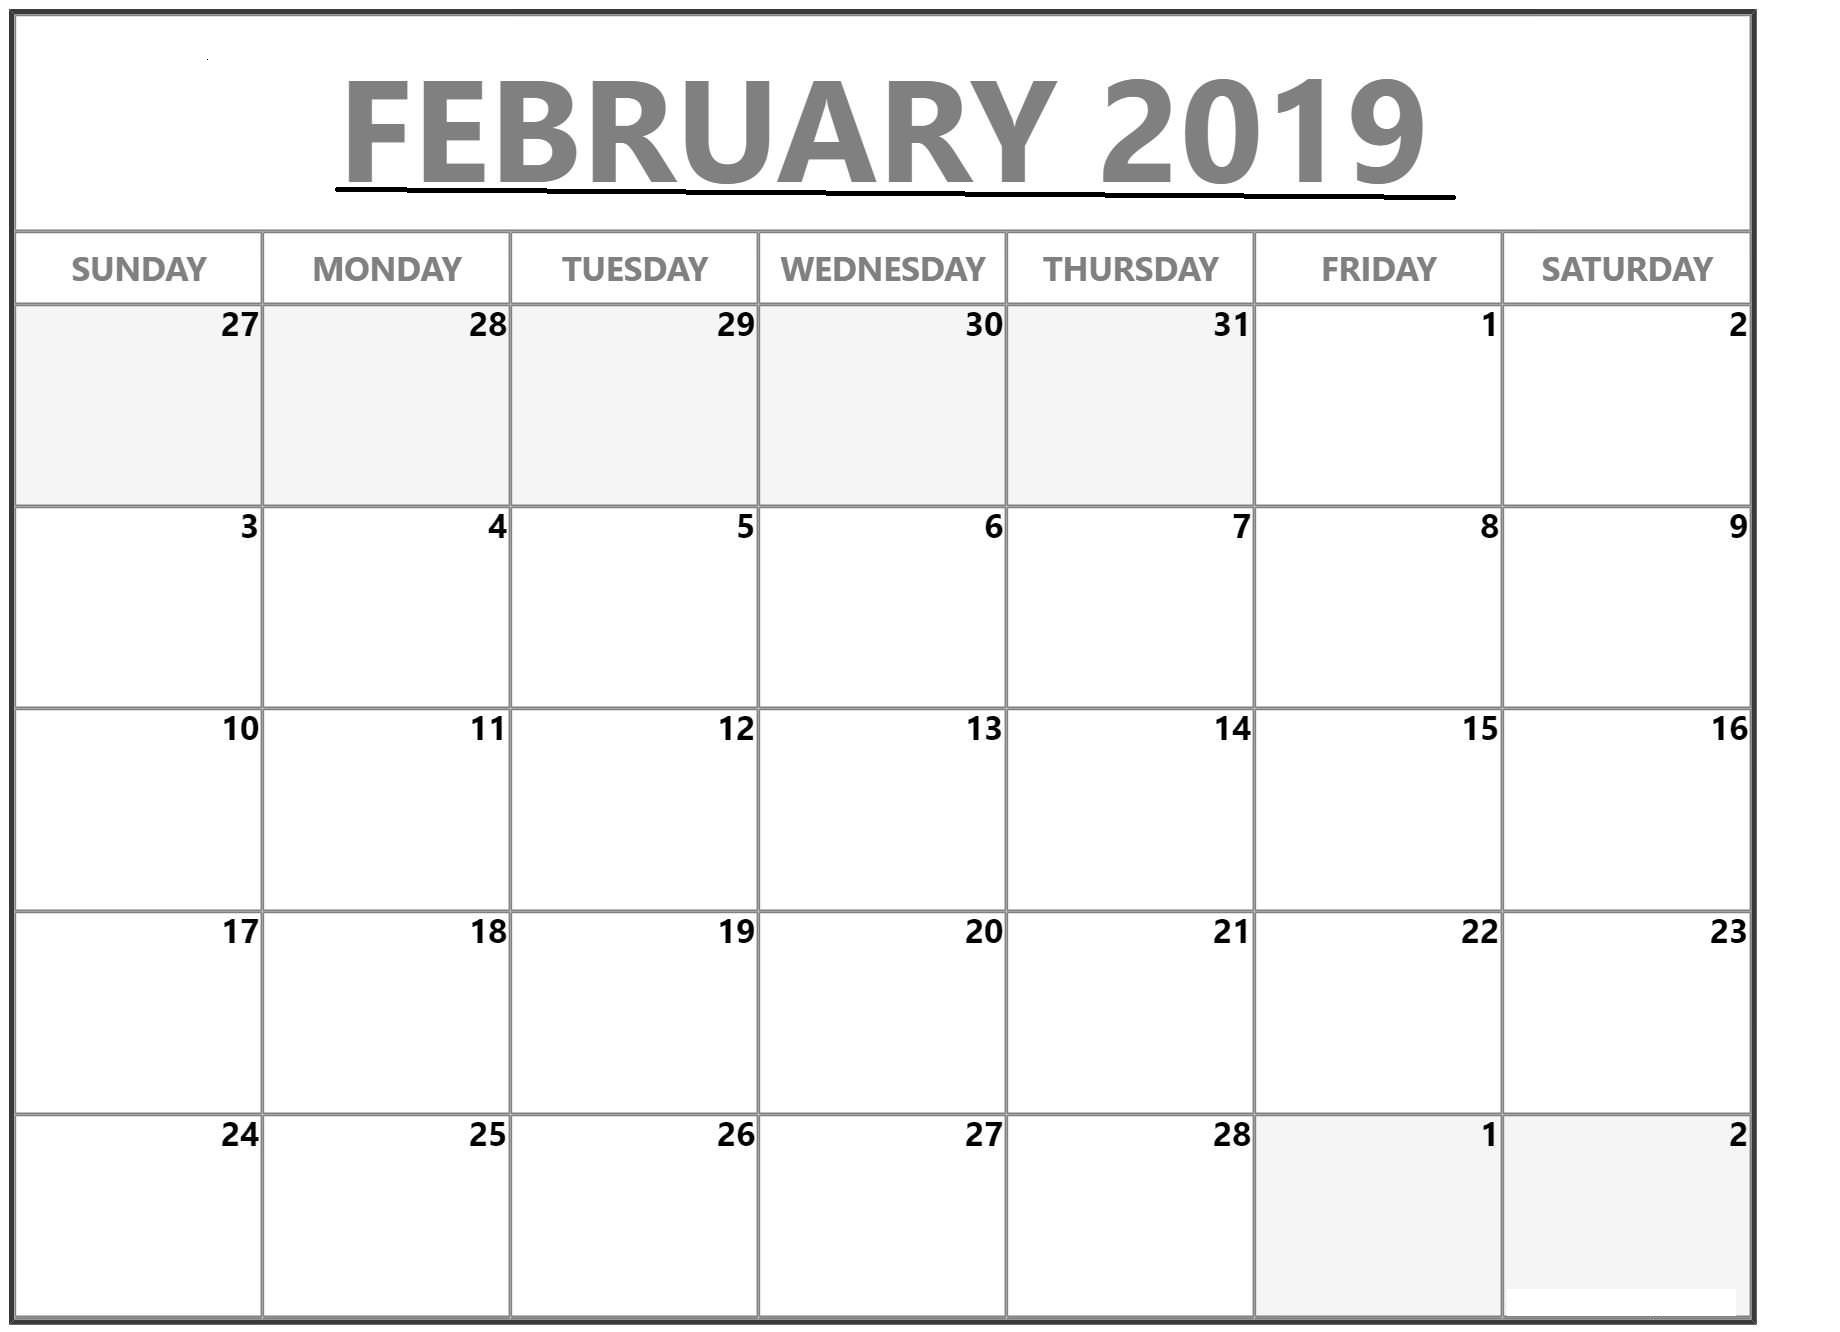 february 2019 calendar template images